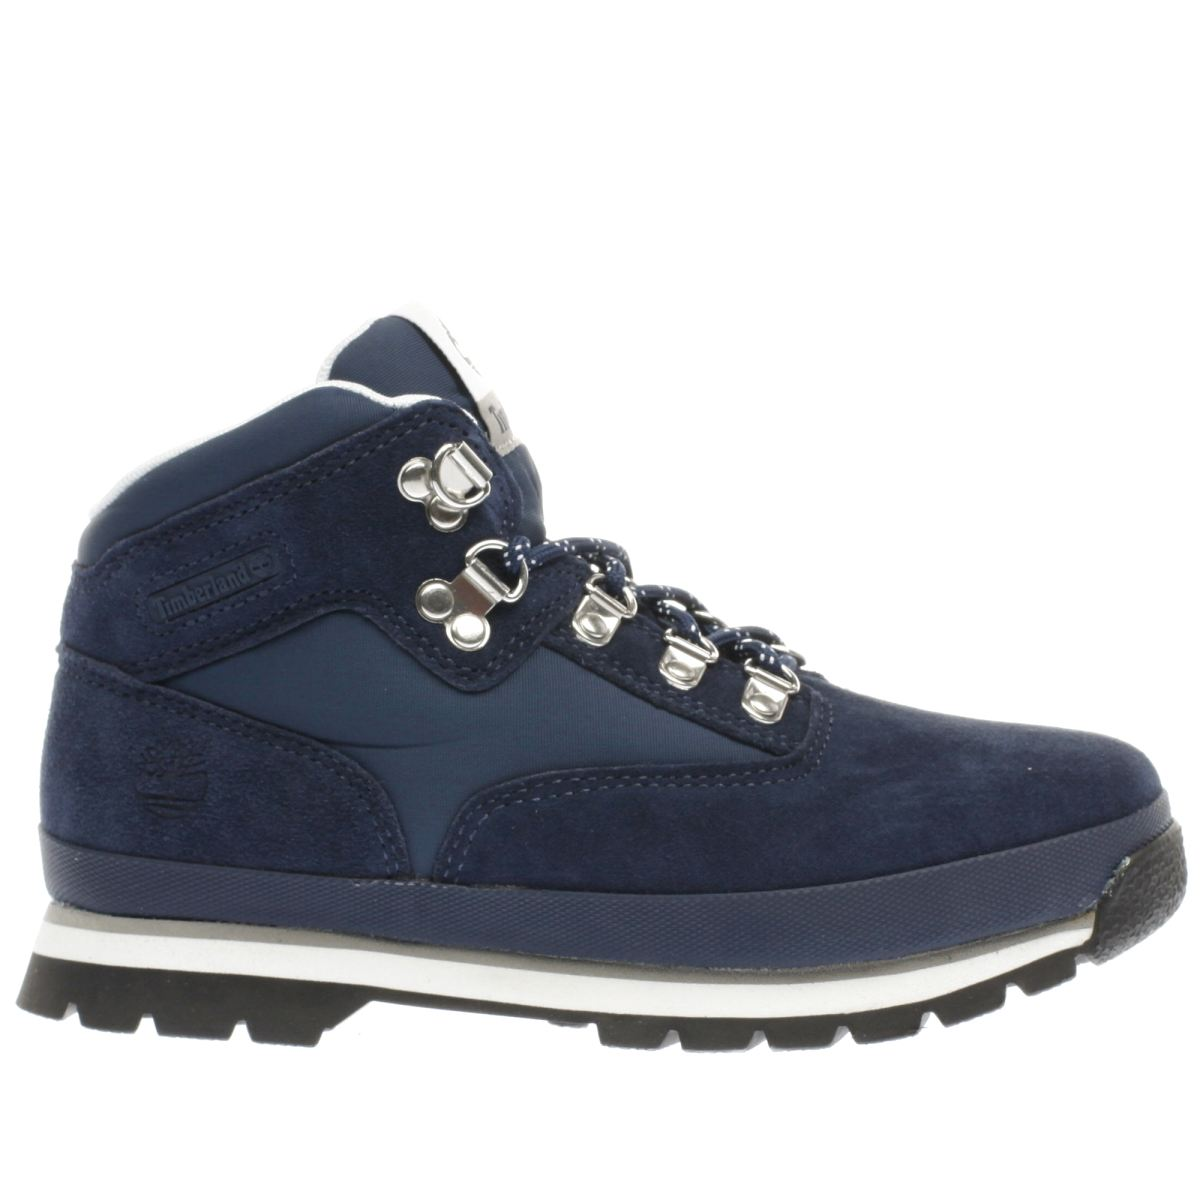 timberland navy & white euro hiker Boys Junior Boots